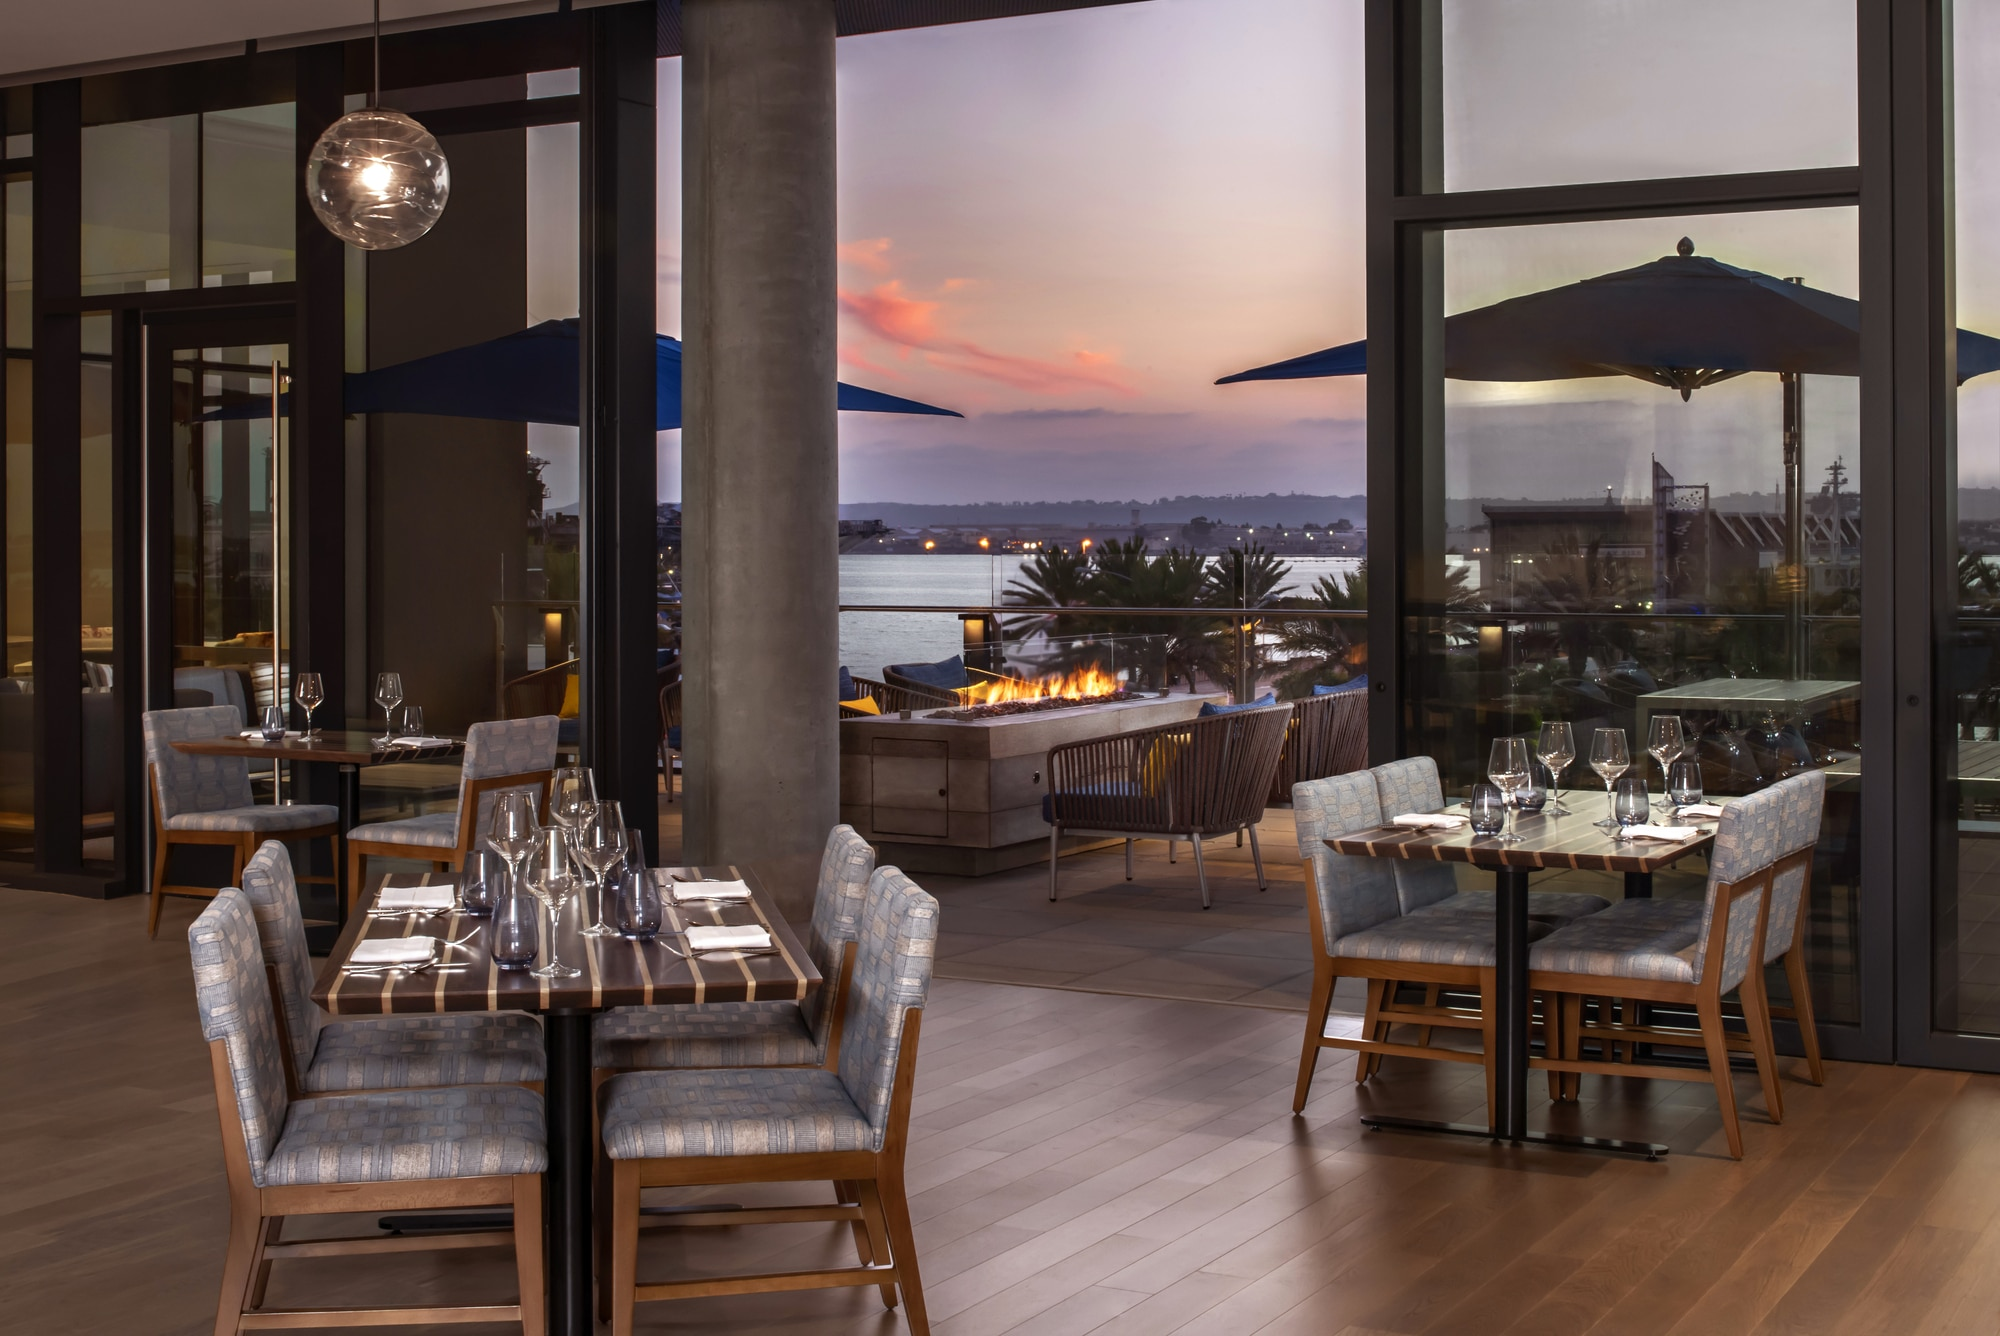 Tables in Vistal Restaurant overlook the San Diego Bay at sunset.